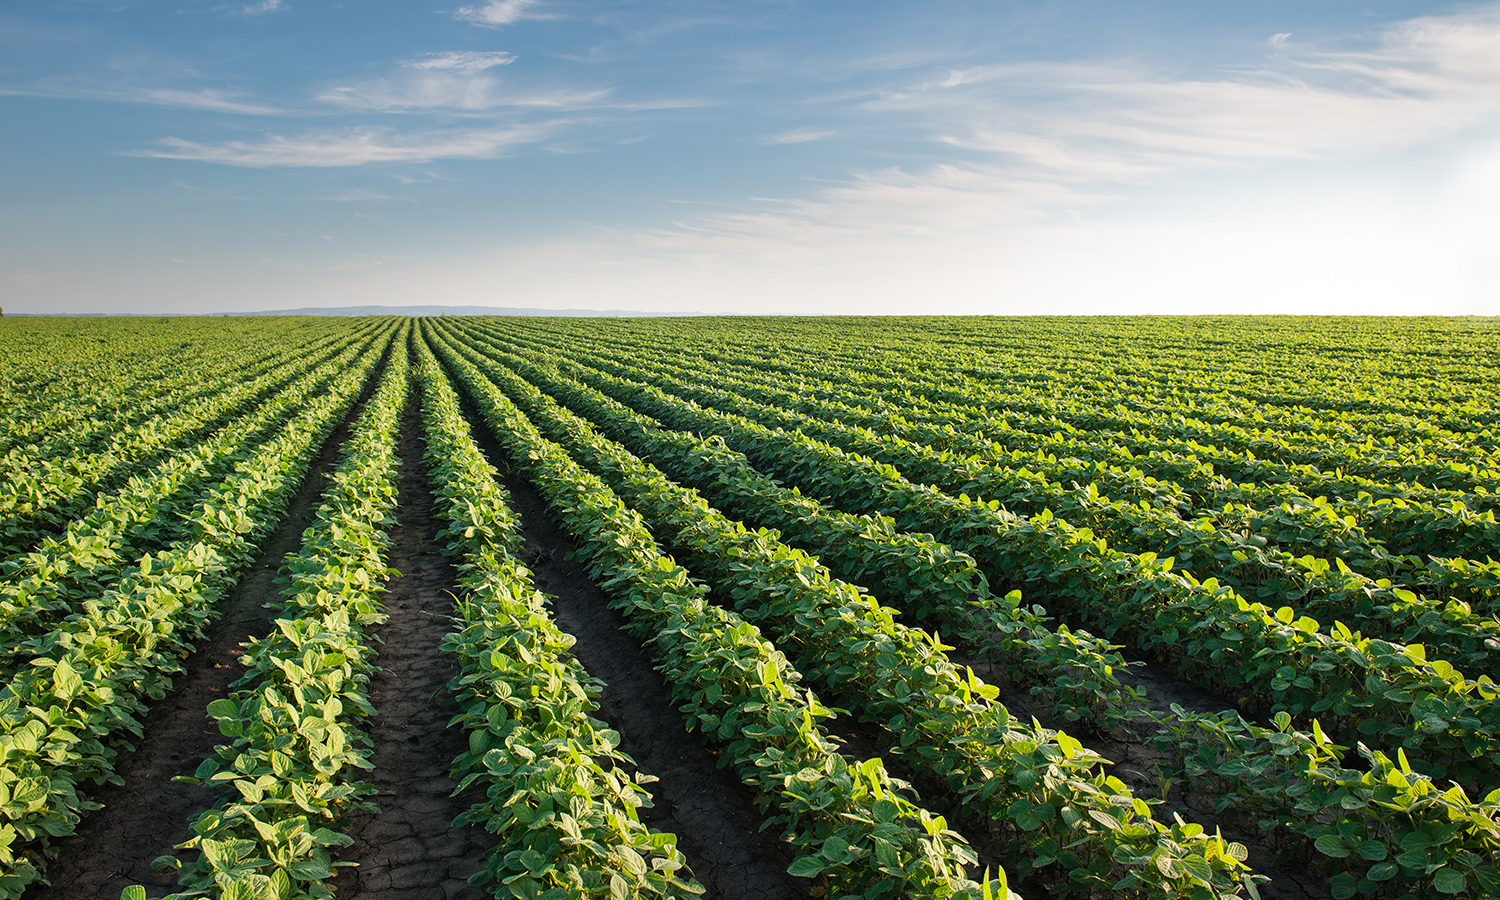 The Agricultural Worker Program Act could help to bring stability to farmworkers, their communities, their agricultural employers, and our food system as a whole.